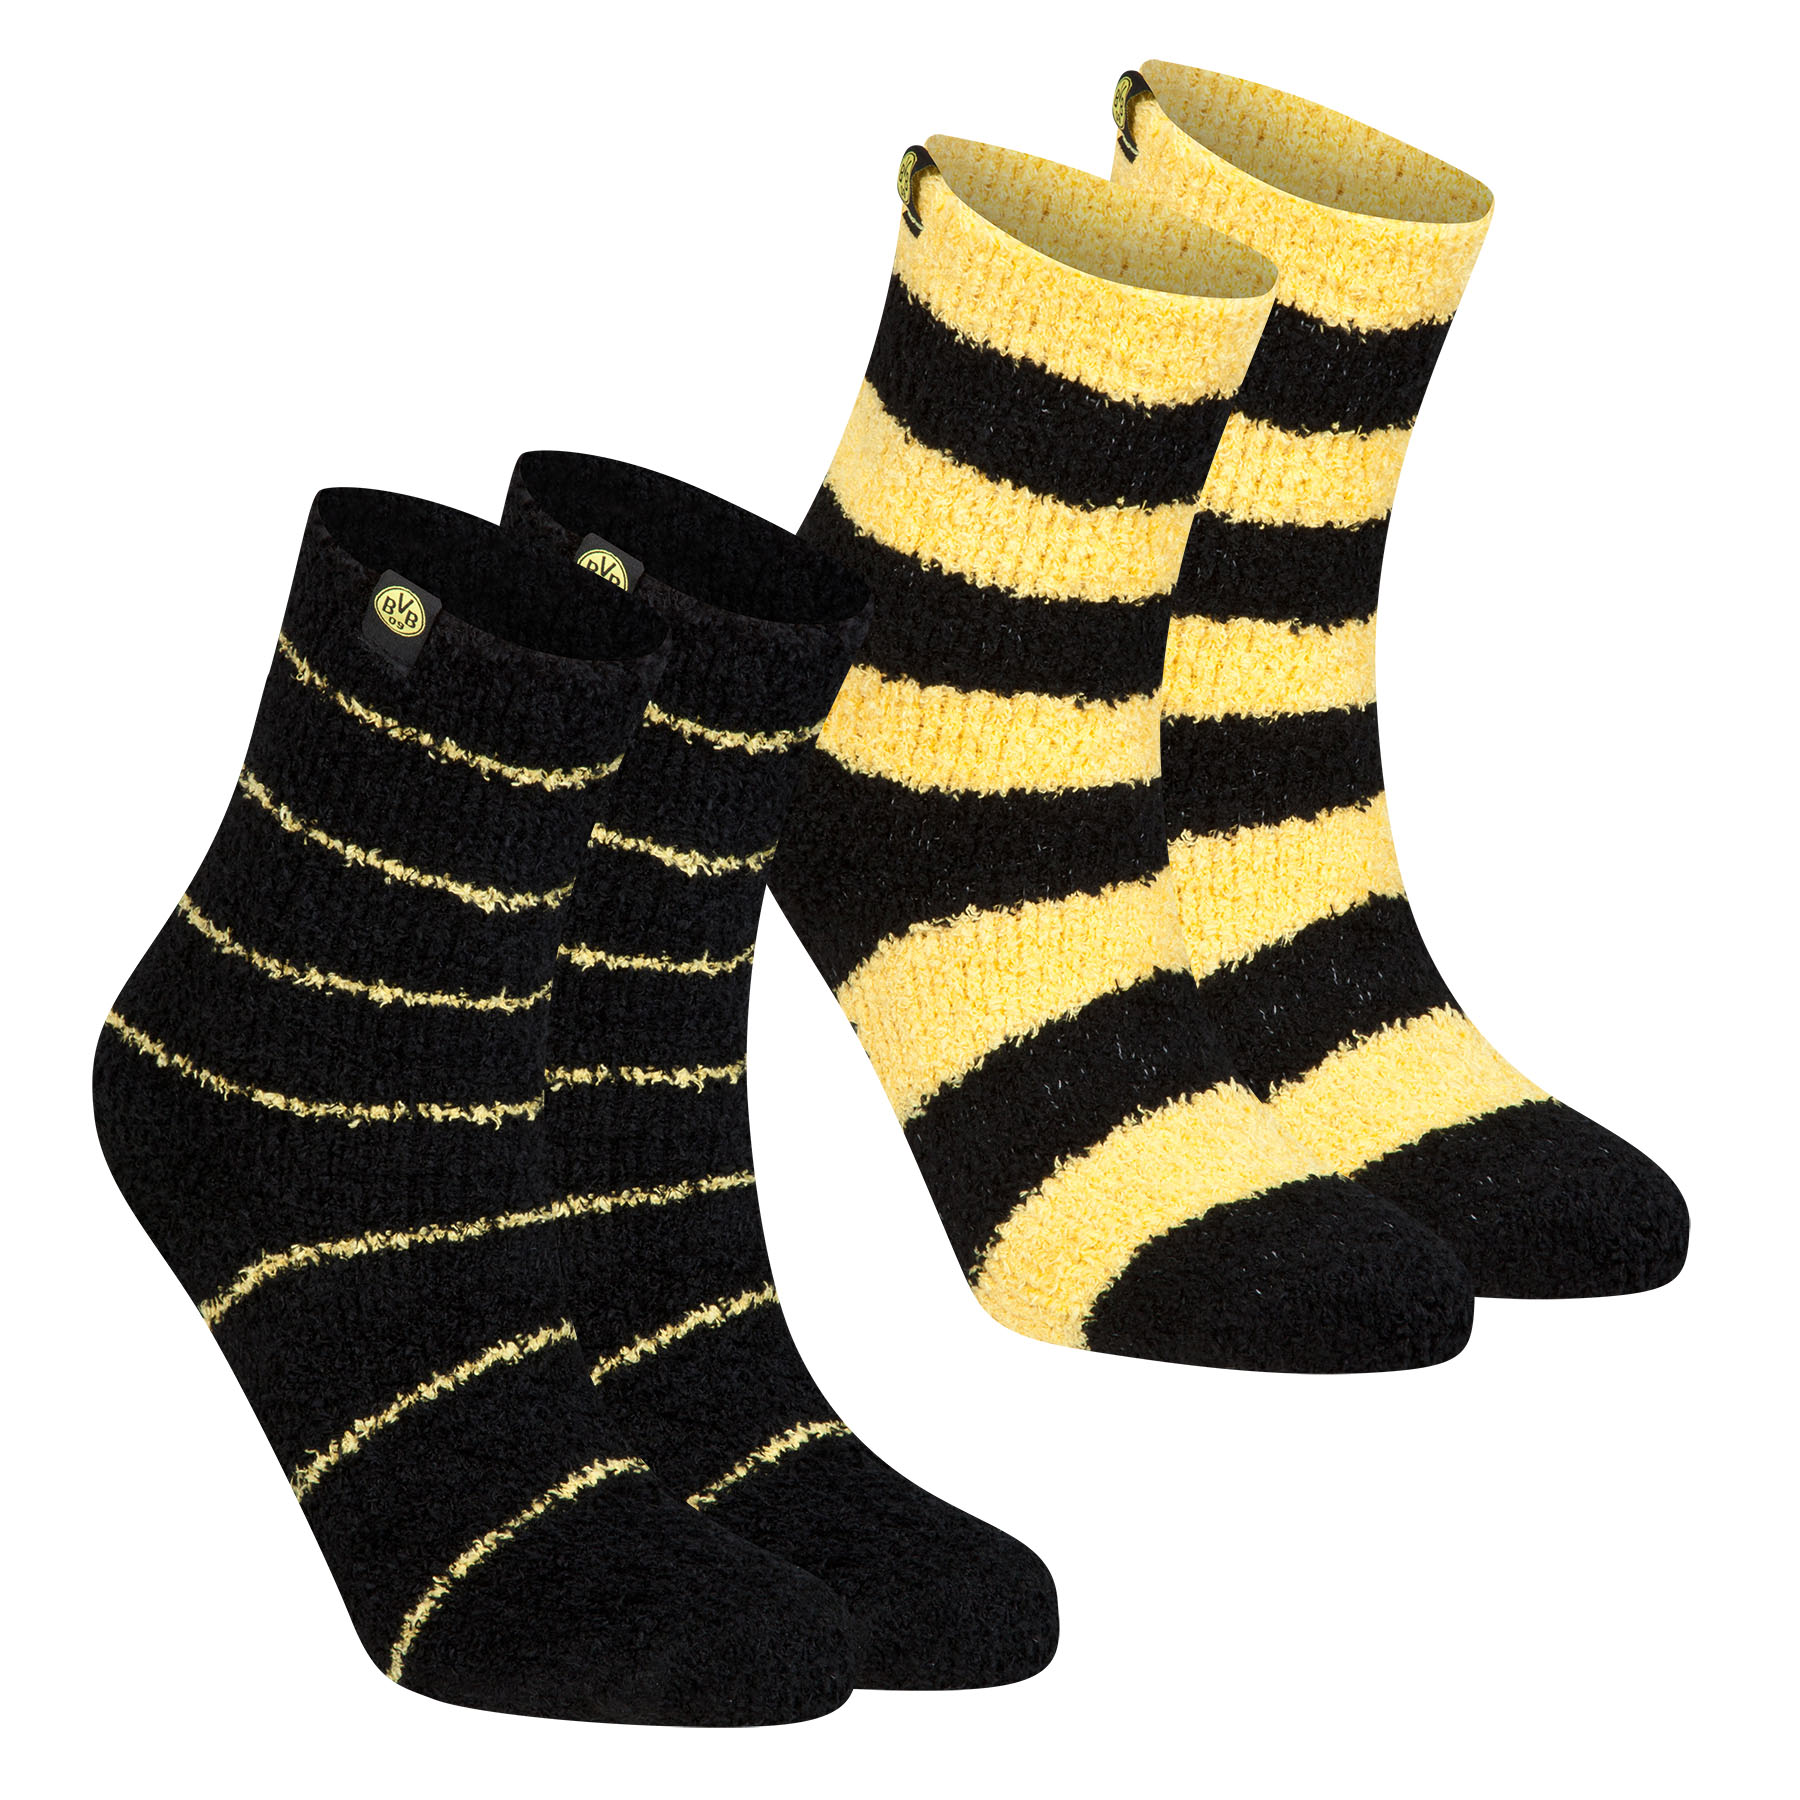 BVB 2 Pack Cuddle Socks - Black/Yellow